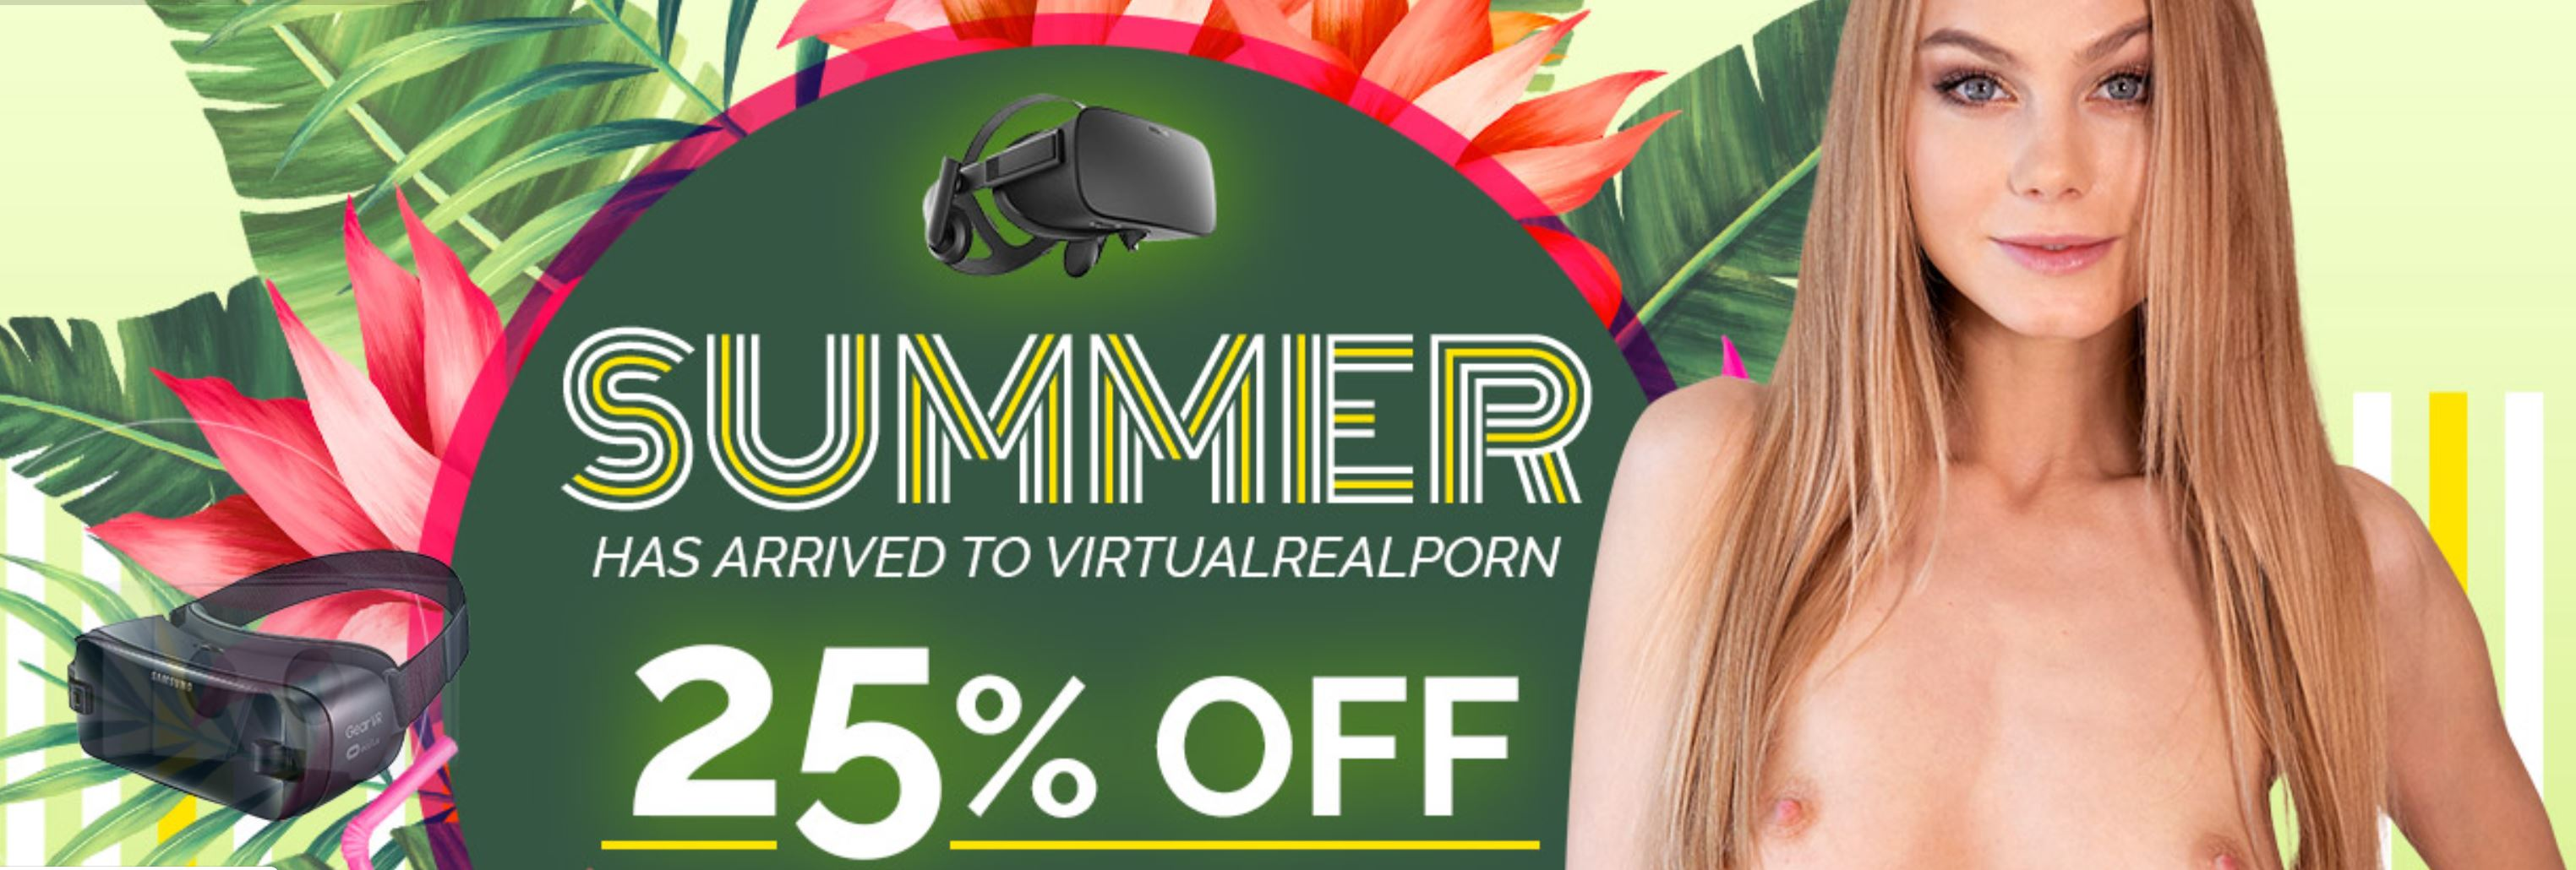 VirtualRealPorn - Summer Sale 2019